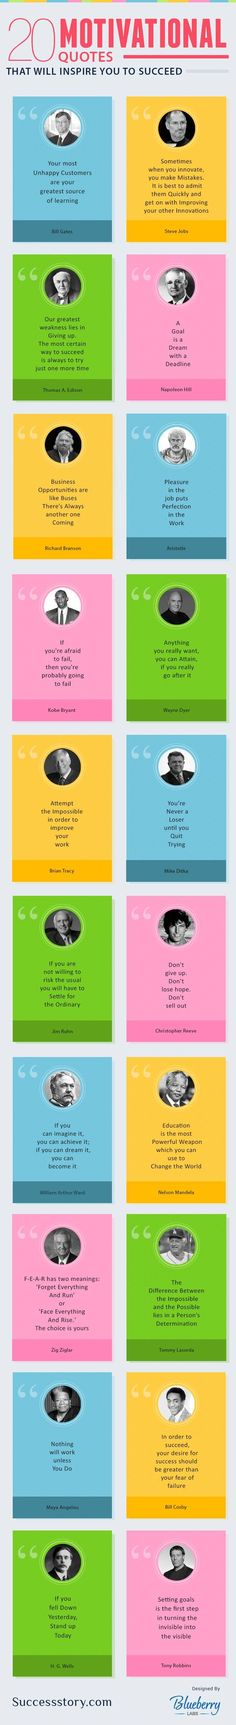 Infographic – 20 Motivational Quotes from Legendary Entrepreneurs, Leaders and Visionaries. This infographic gives 20 quick shots of inspiration and motivation Motivacional Quotes, Best Motivational Quotes, Great Quotes, Positive Quotes, Quotes To Live By, Inspirational Quotes, Motivational Stories For Employees, Motivational People, Work Quotes